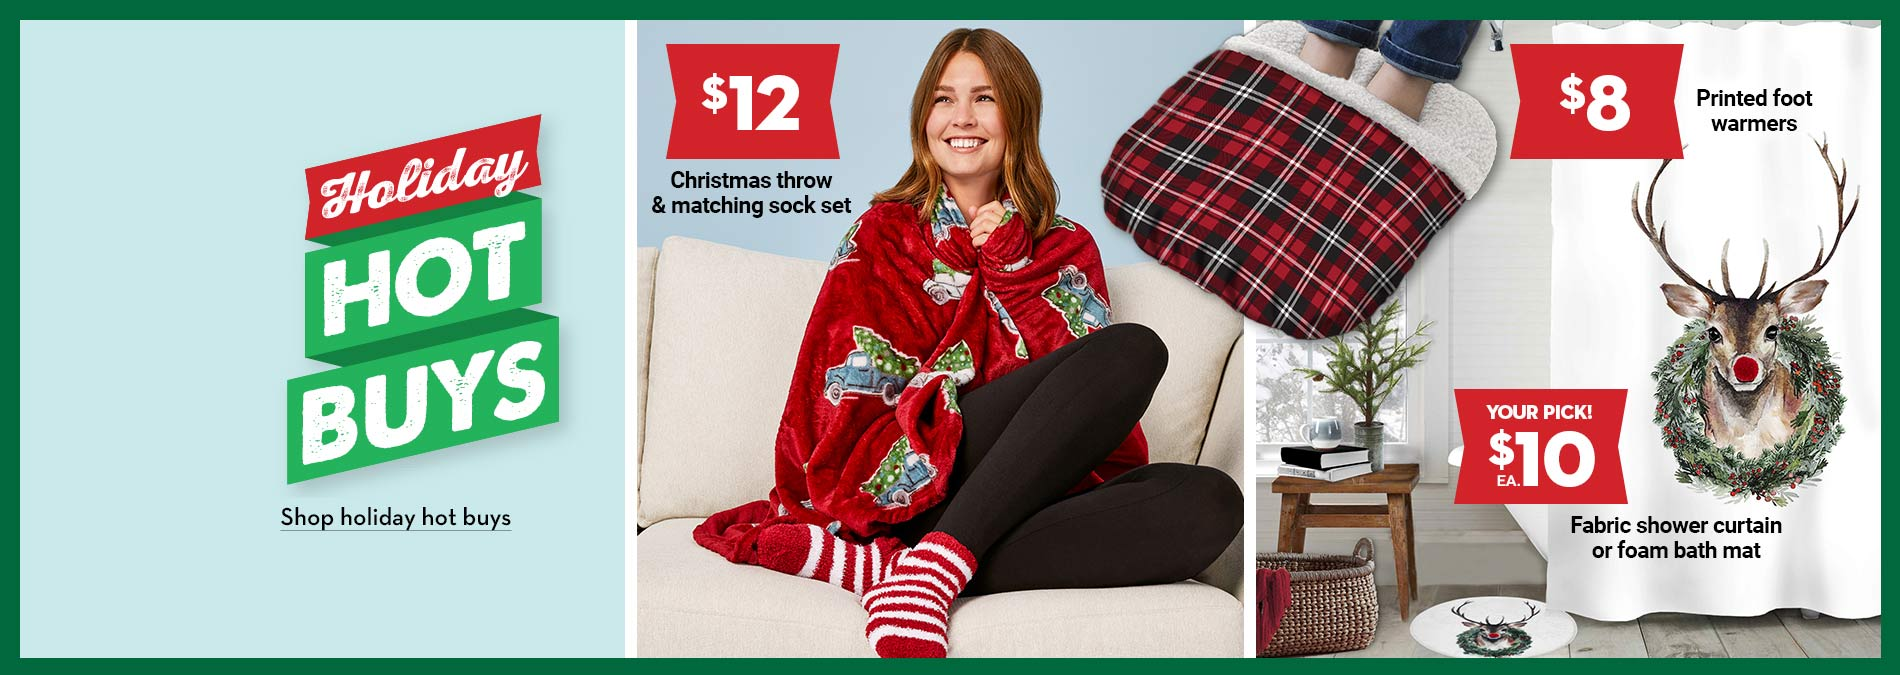 Holiday Hot Buys. $12 Christmas throw & matching sock set. $8 Printed foot warmers. $10 Fabric shower curtain or foam bath mat